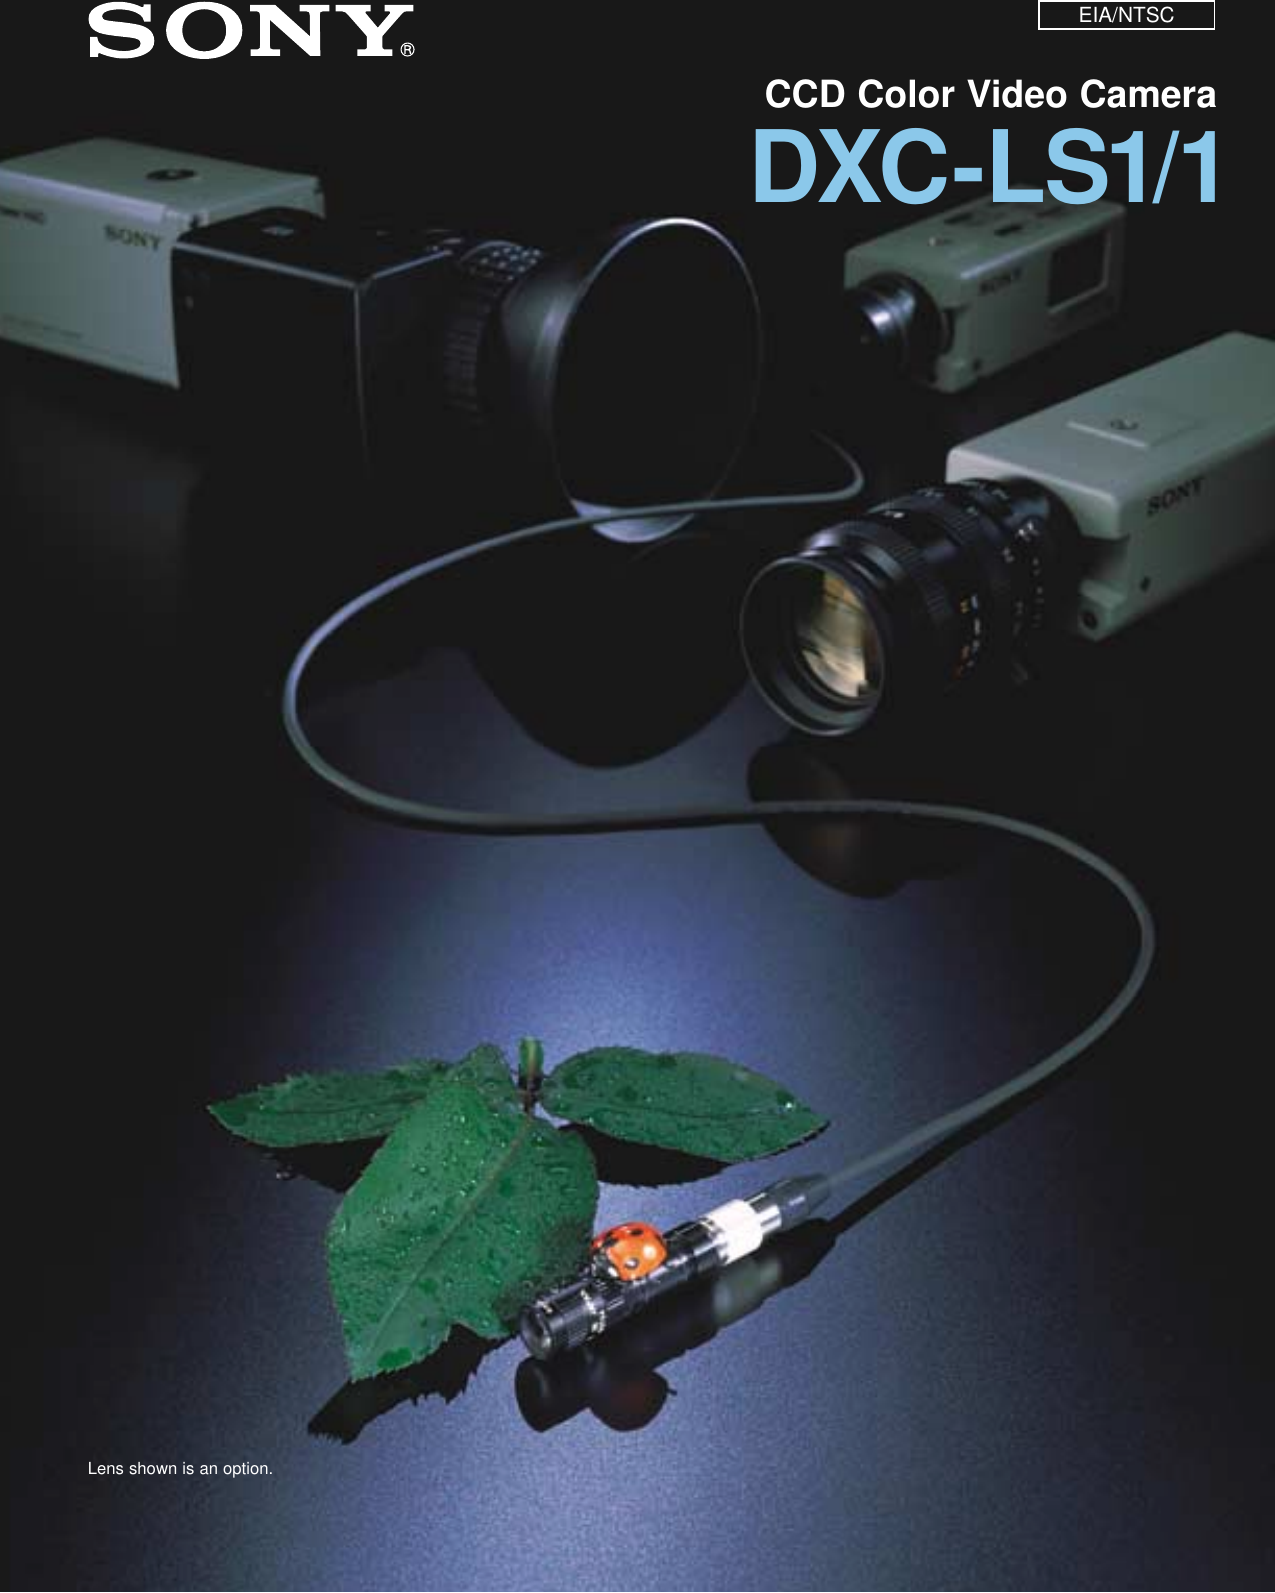 Sony dxc ls1 1 users manual sciox Choice Image